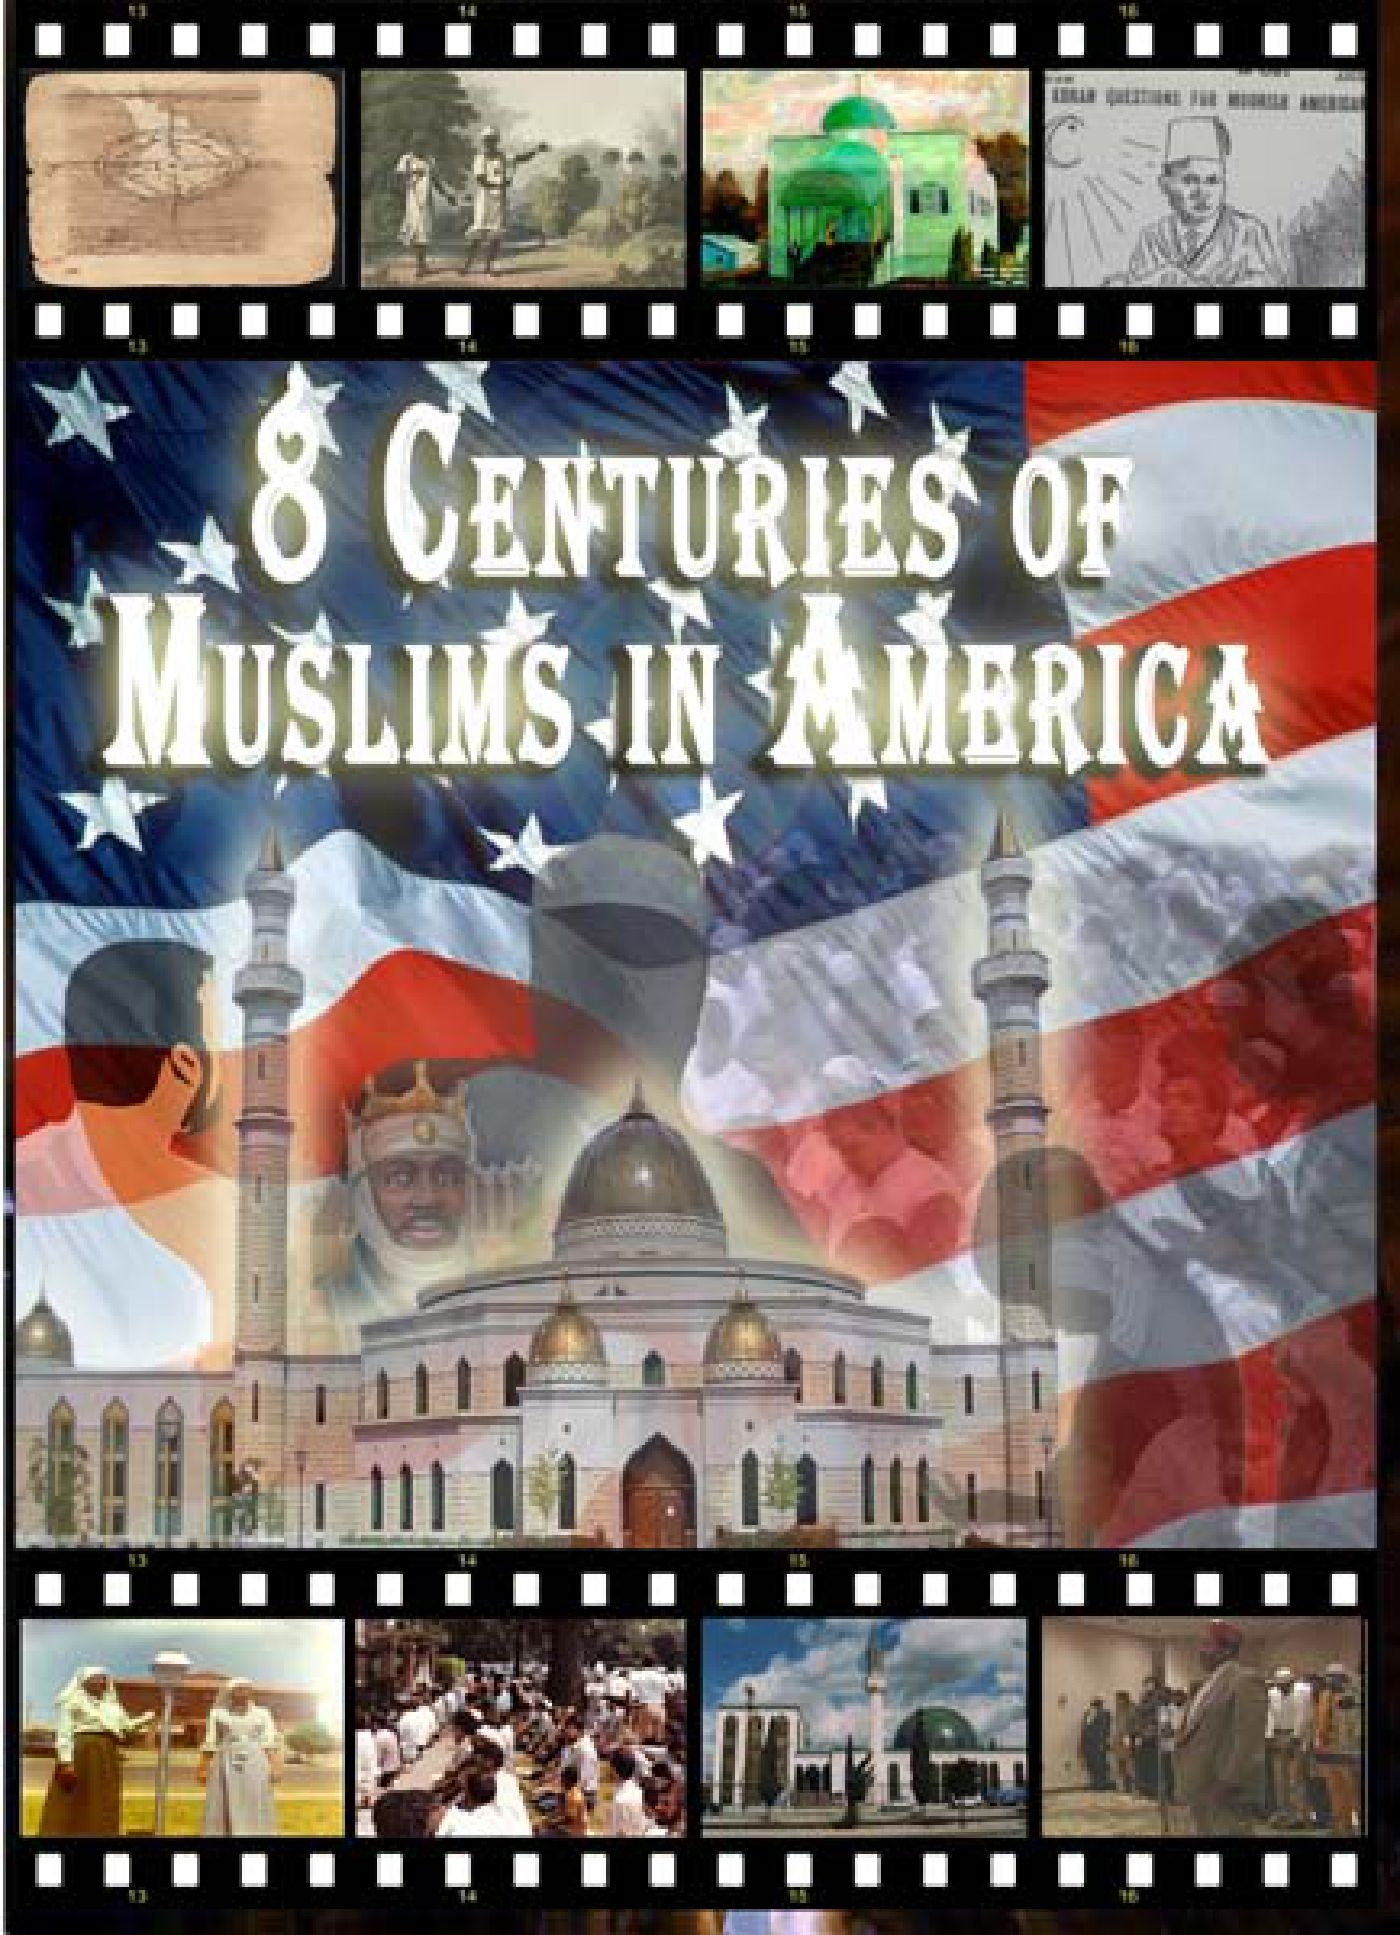 8 Centuries of Muslims in America